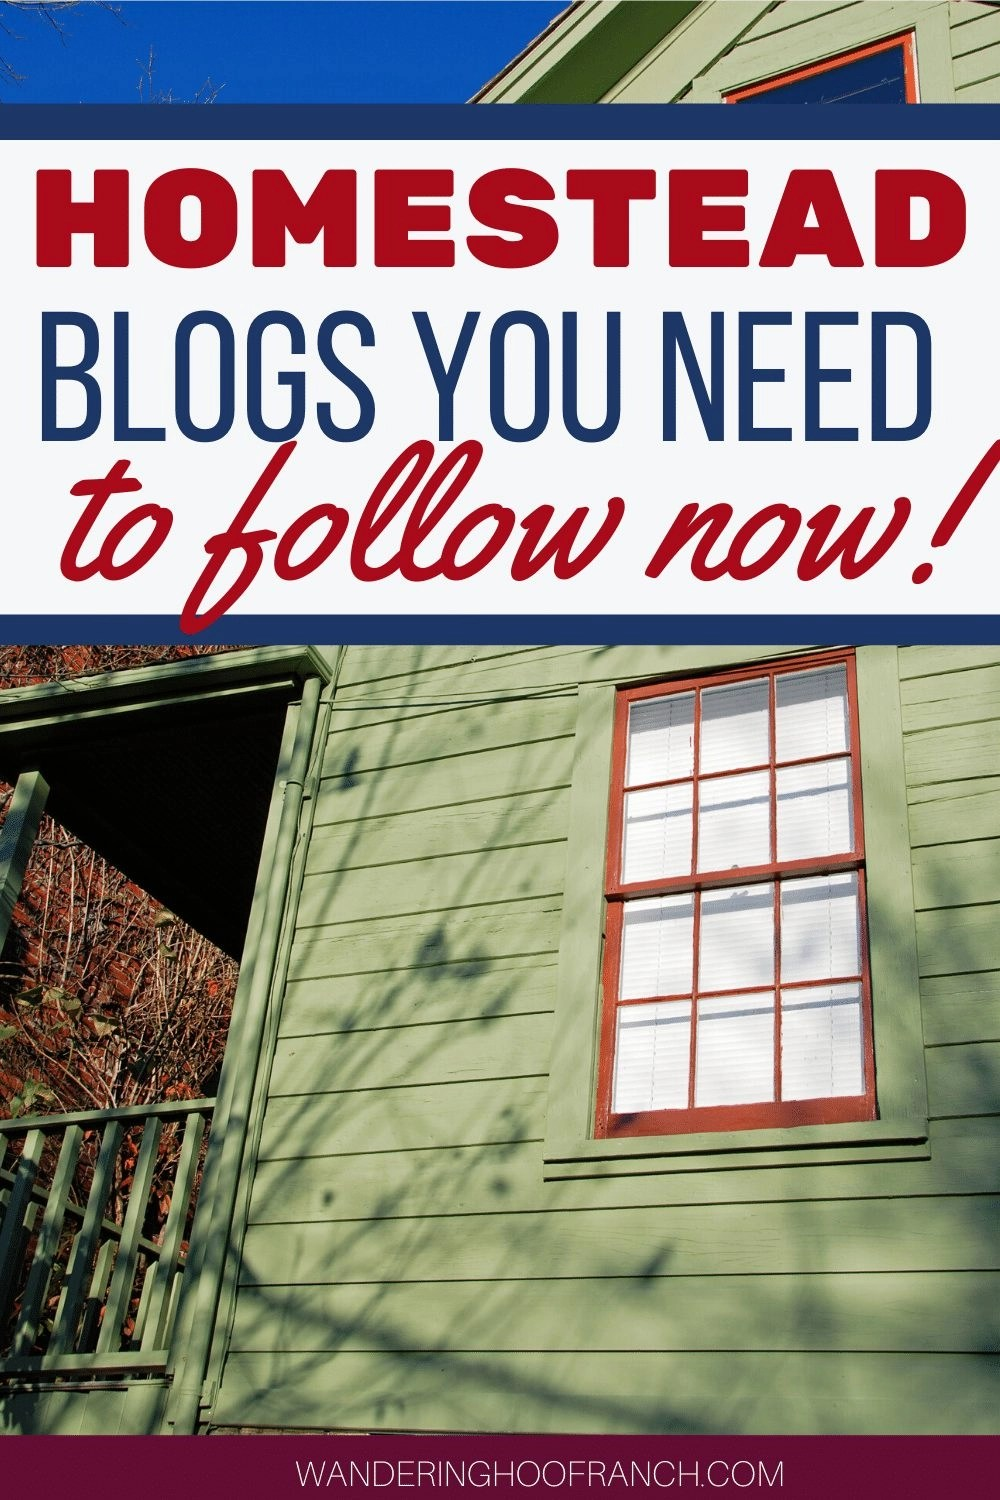 homestead blogs you need to follow now!